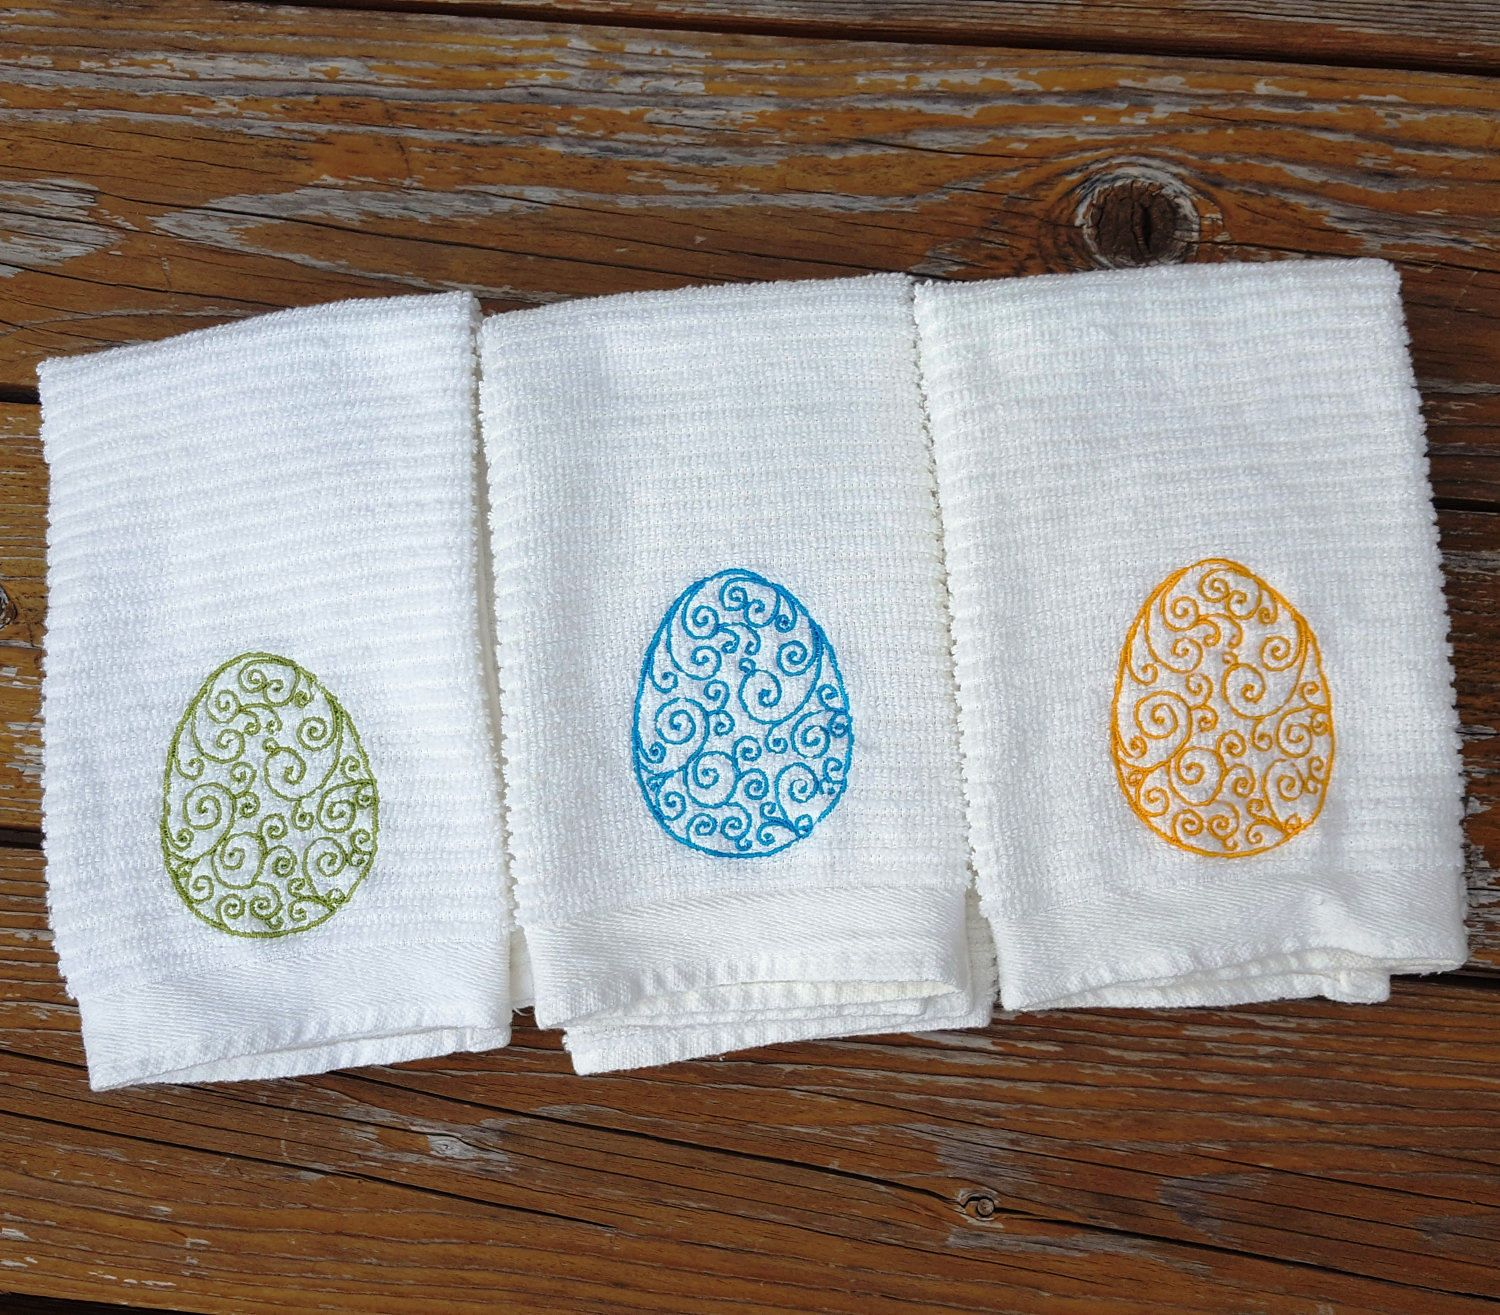 Easter egg towels kitchen bar towels kitchen towels easter bar sale easter egg towels kitchen bar towels kitchen towels easter bar mop towels easter gift mom easter gift shower gift by sew4myloves negle Choice Image